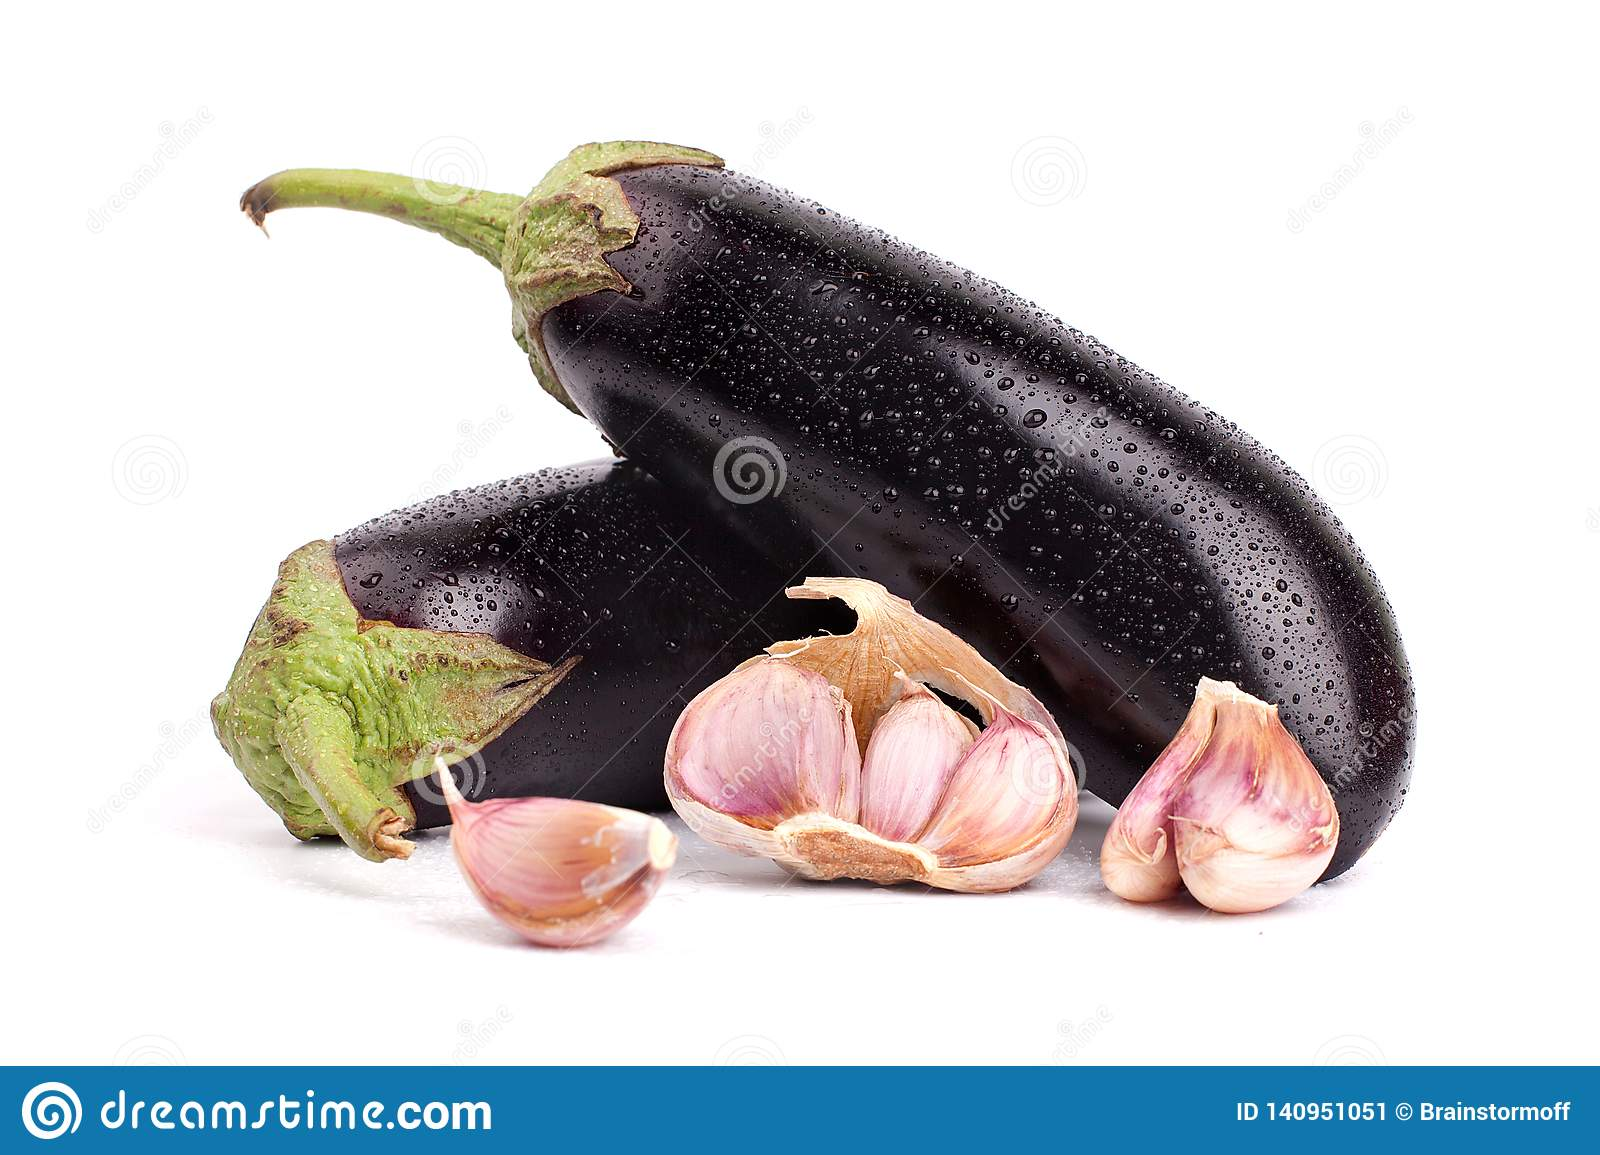 Two eggplants and garlic cloves in water drops with green tails on white background close up isolated